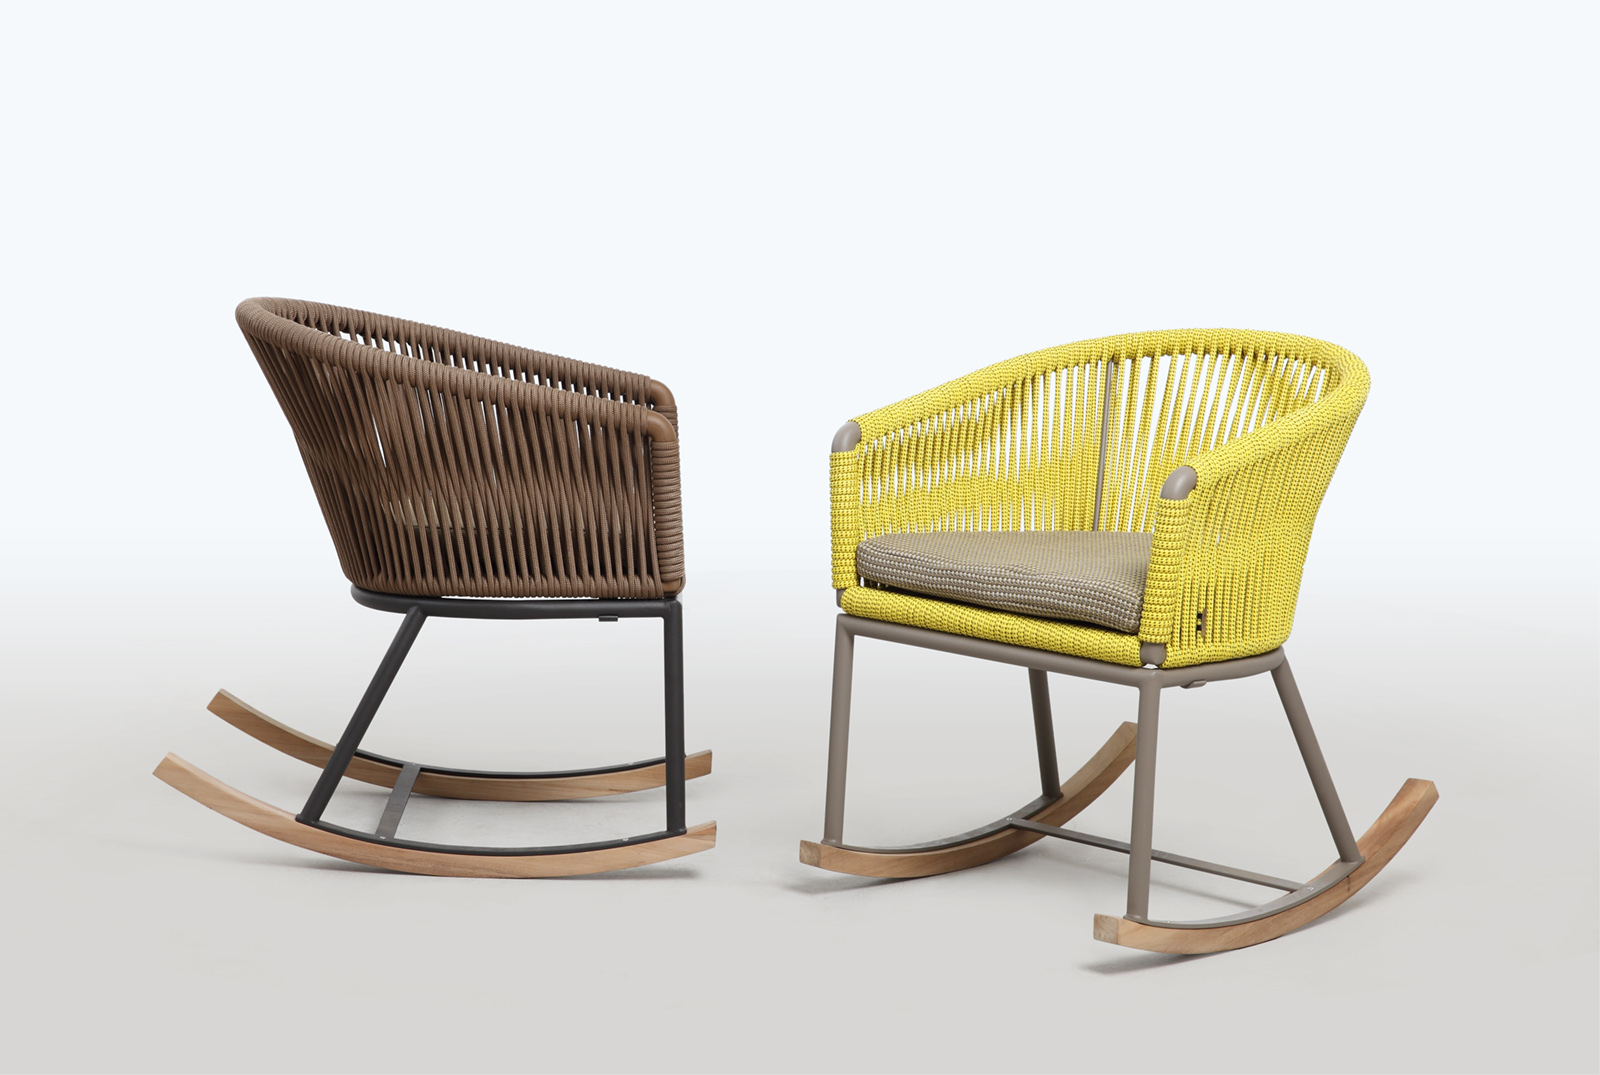 modern rocking chair singapore 2 chairs and table rattan outdoor rope 7 – lebello exclusive furniture